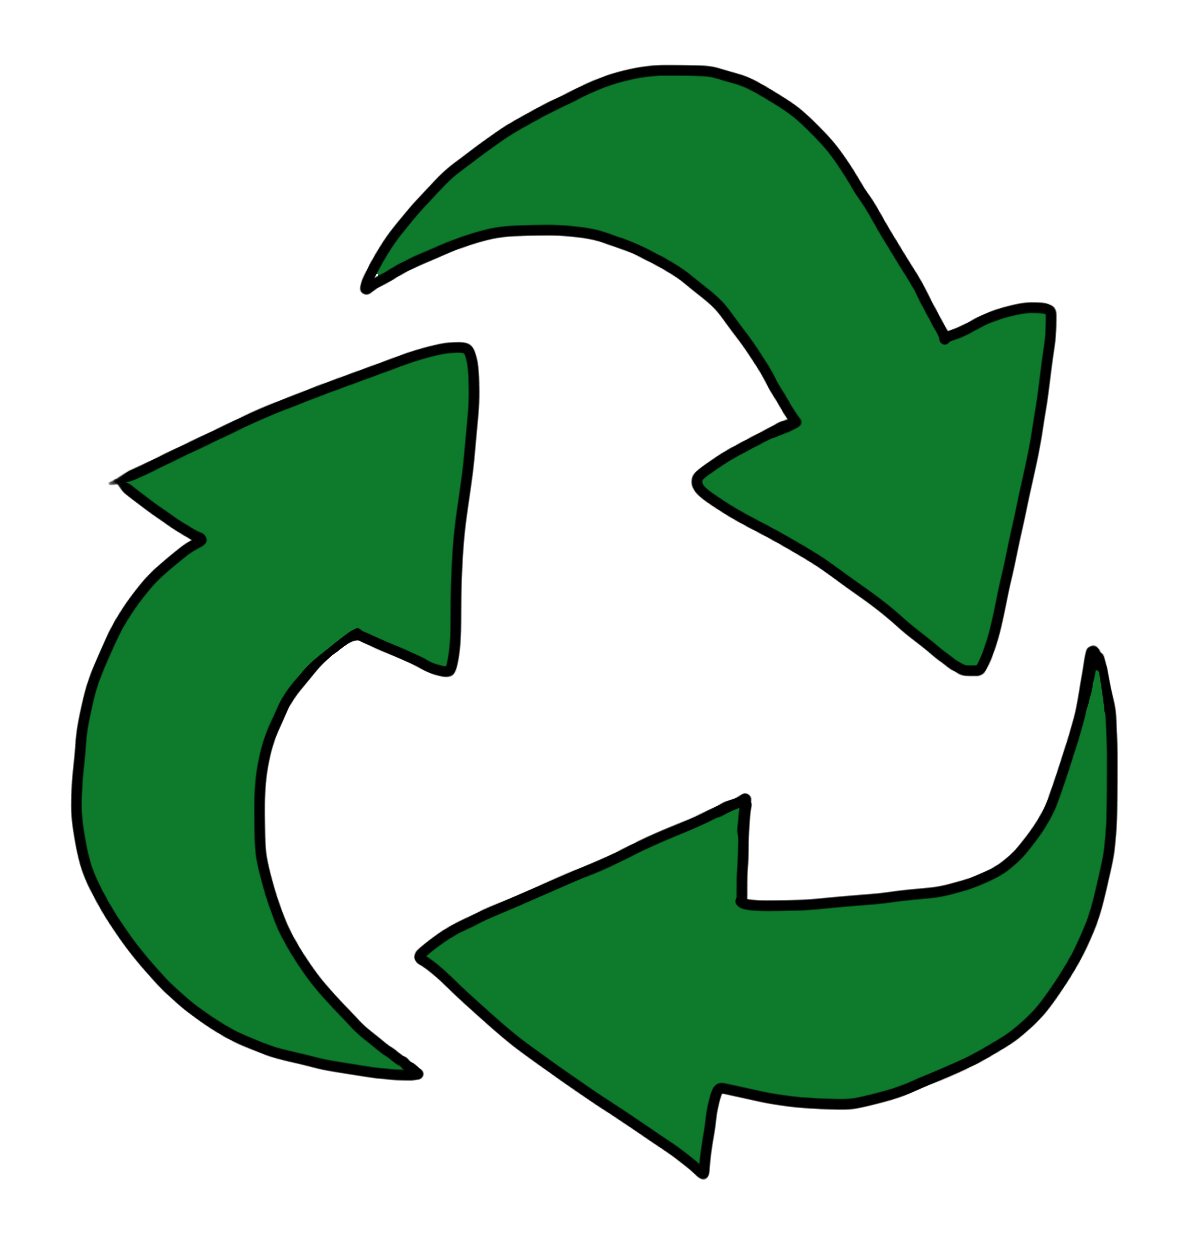 Recycle earth clipart svg library library Recycle earth clipart kid 3 - ClipartBarn svg library library